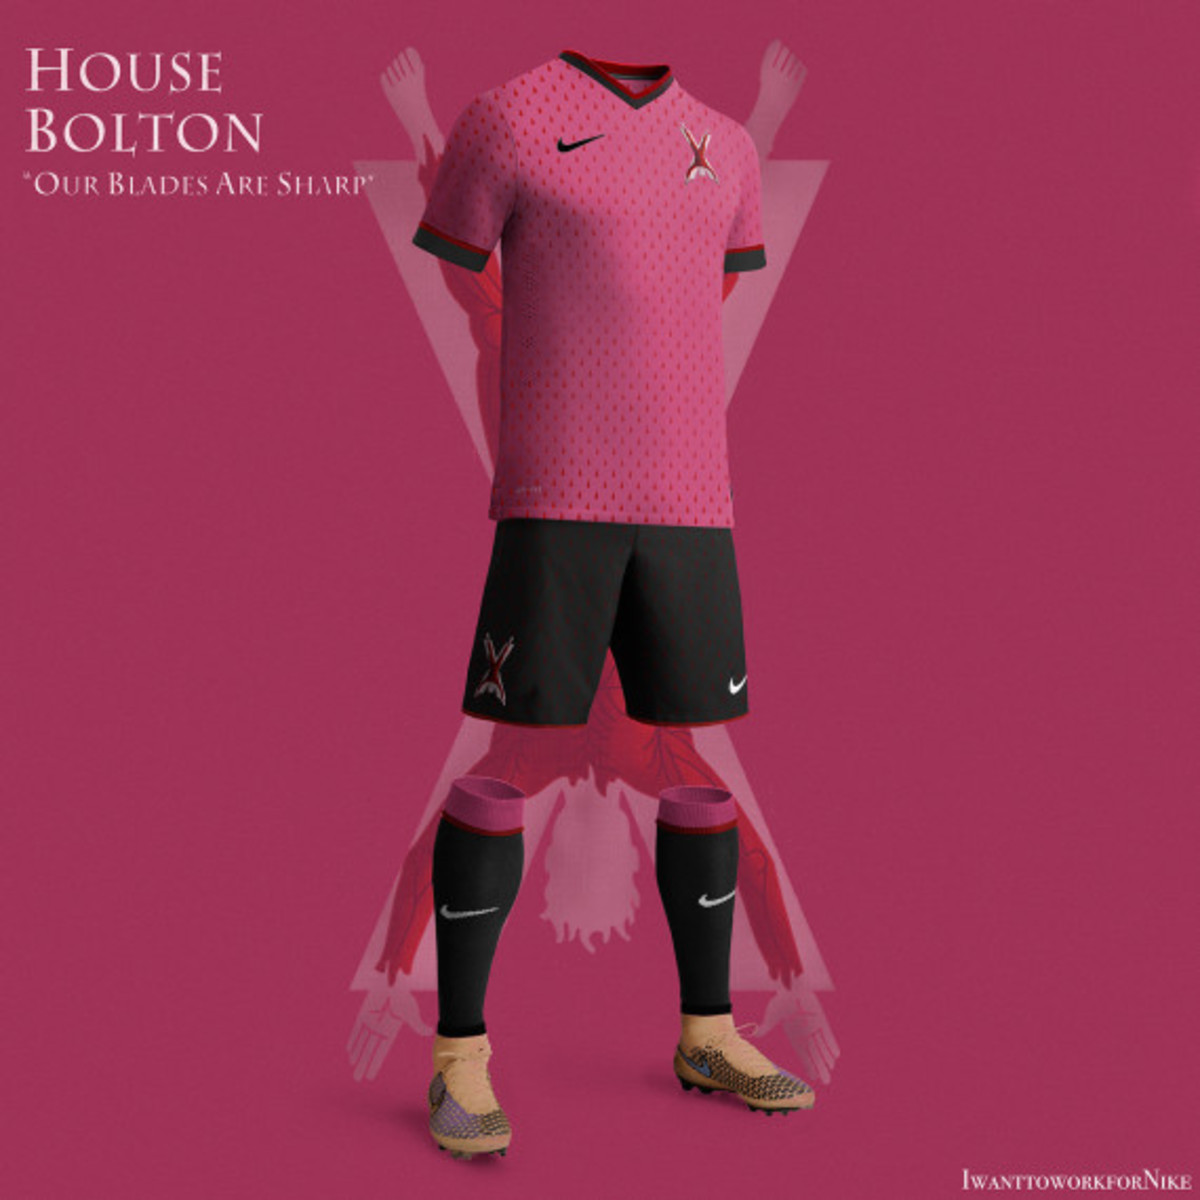 Game of Thrones-inspired Nike Soccer Kit Concepts by Nerea Palacios - 4